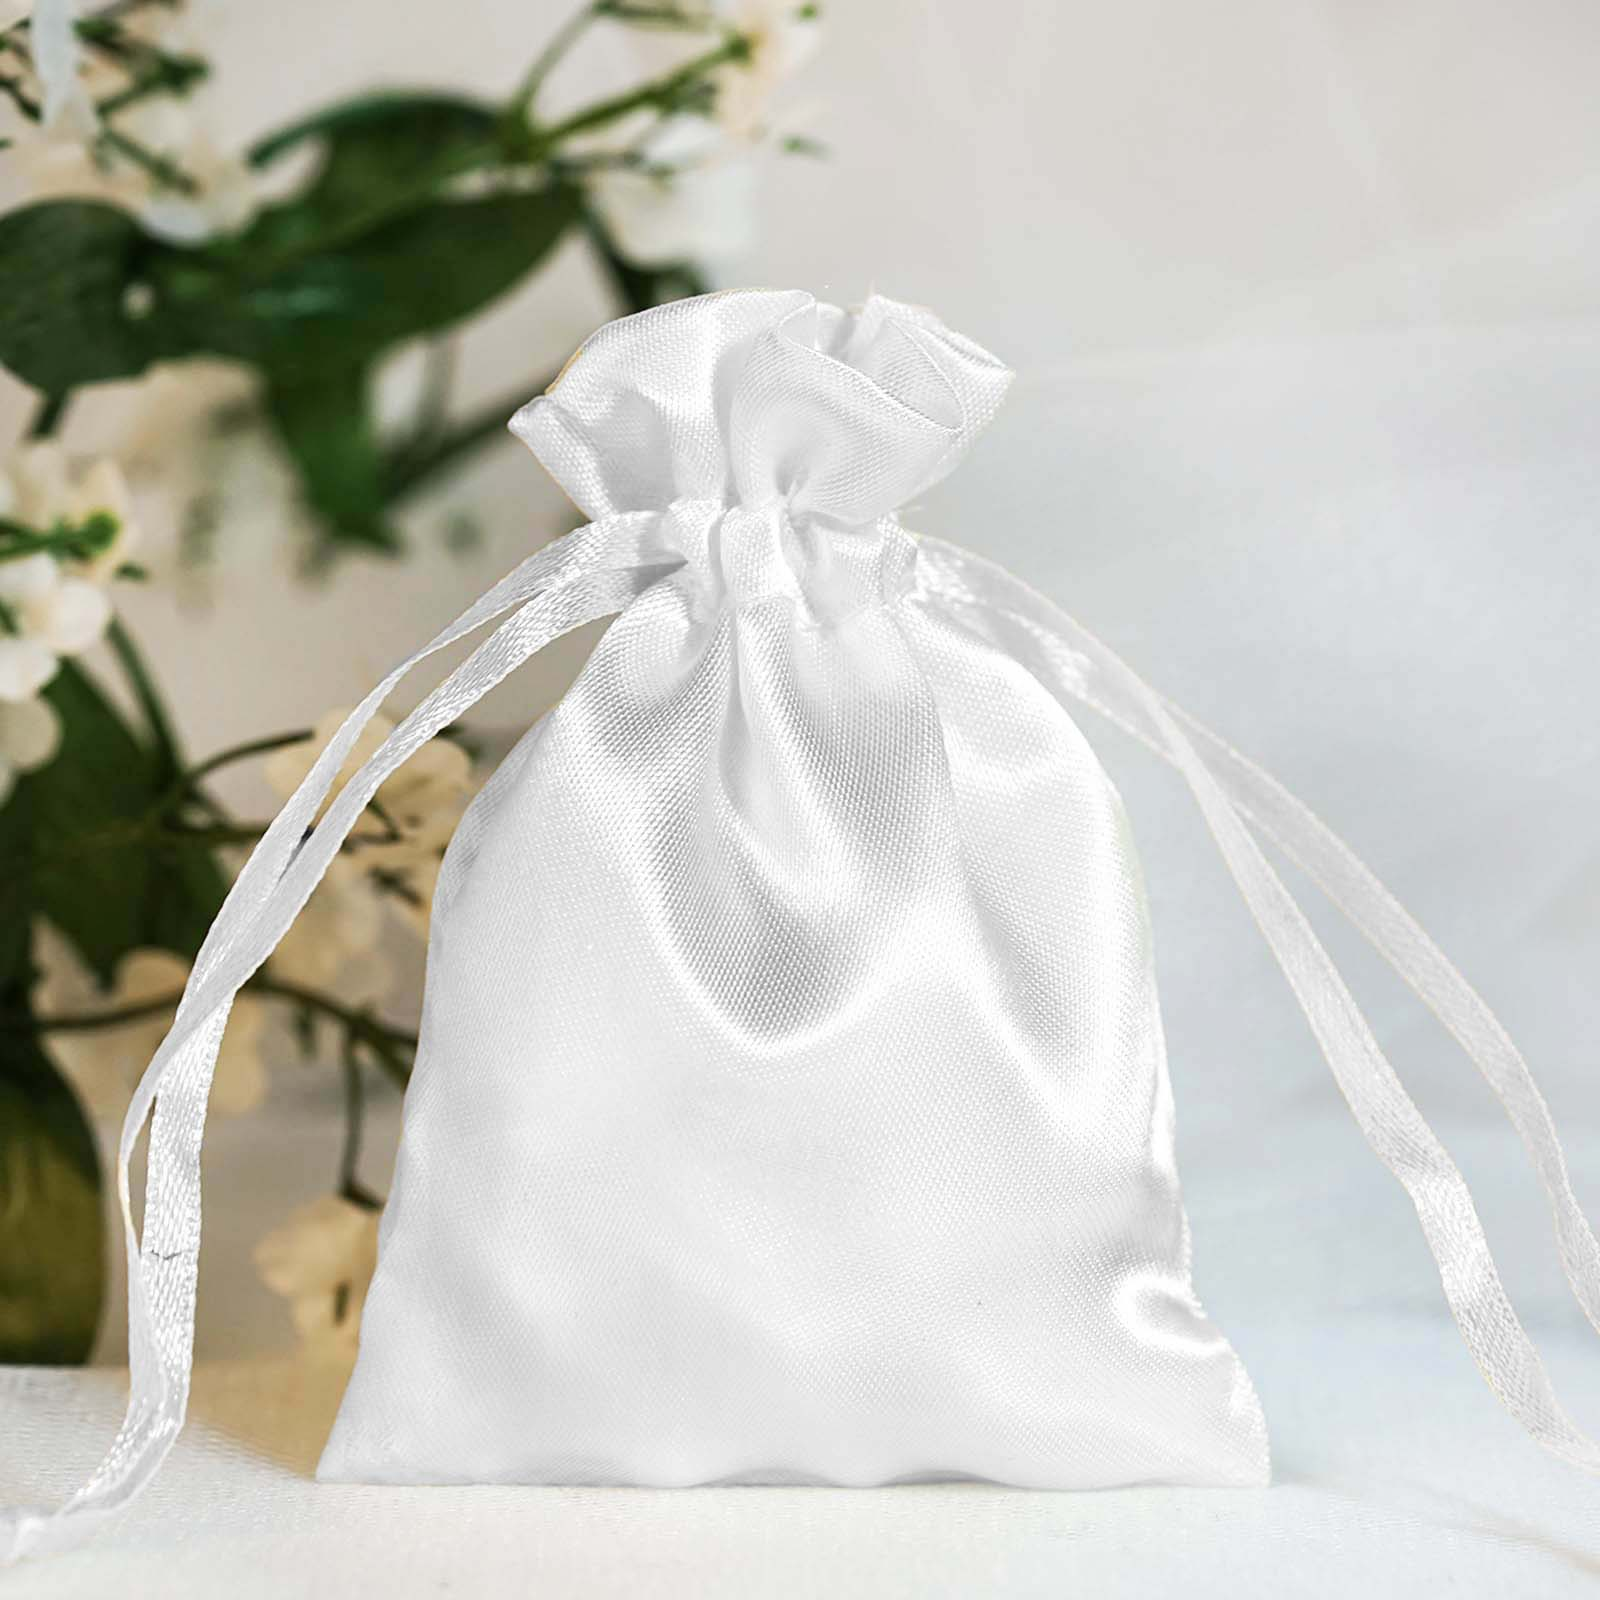 60 pcs 3x3.5 inch SATIN Drawstring FAVOR BAGS - Wedding Gift Pouches ...